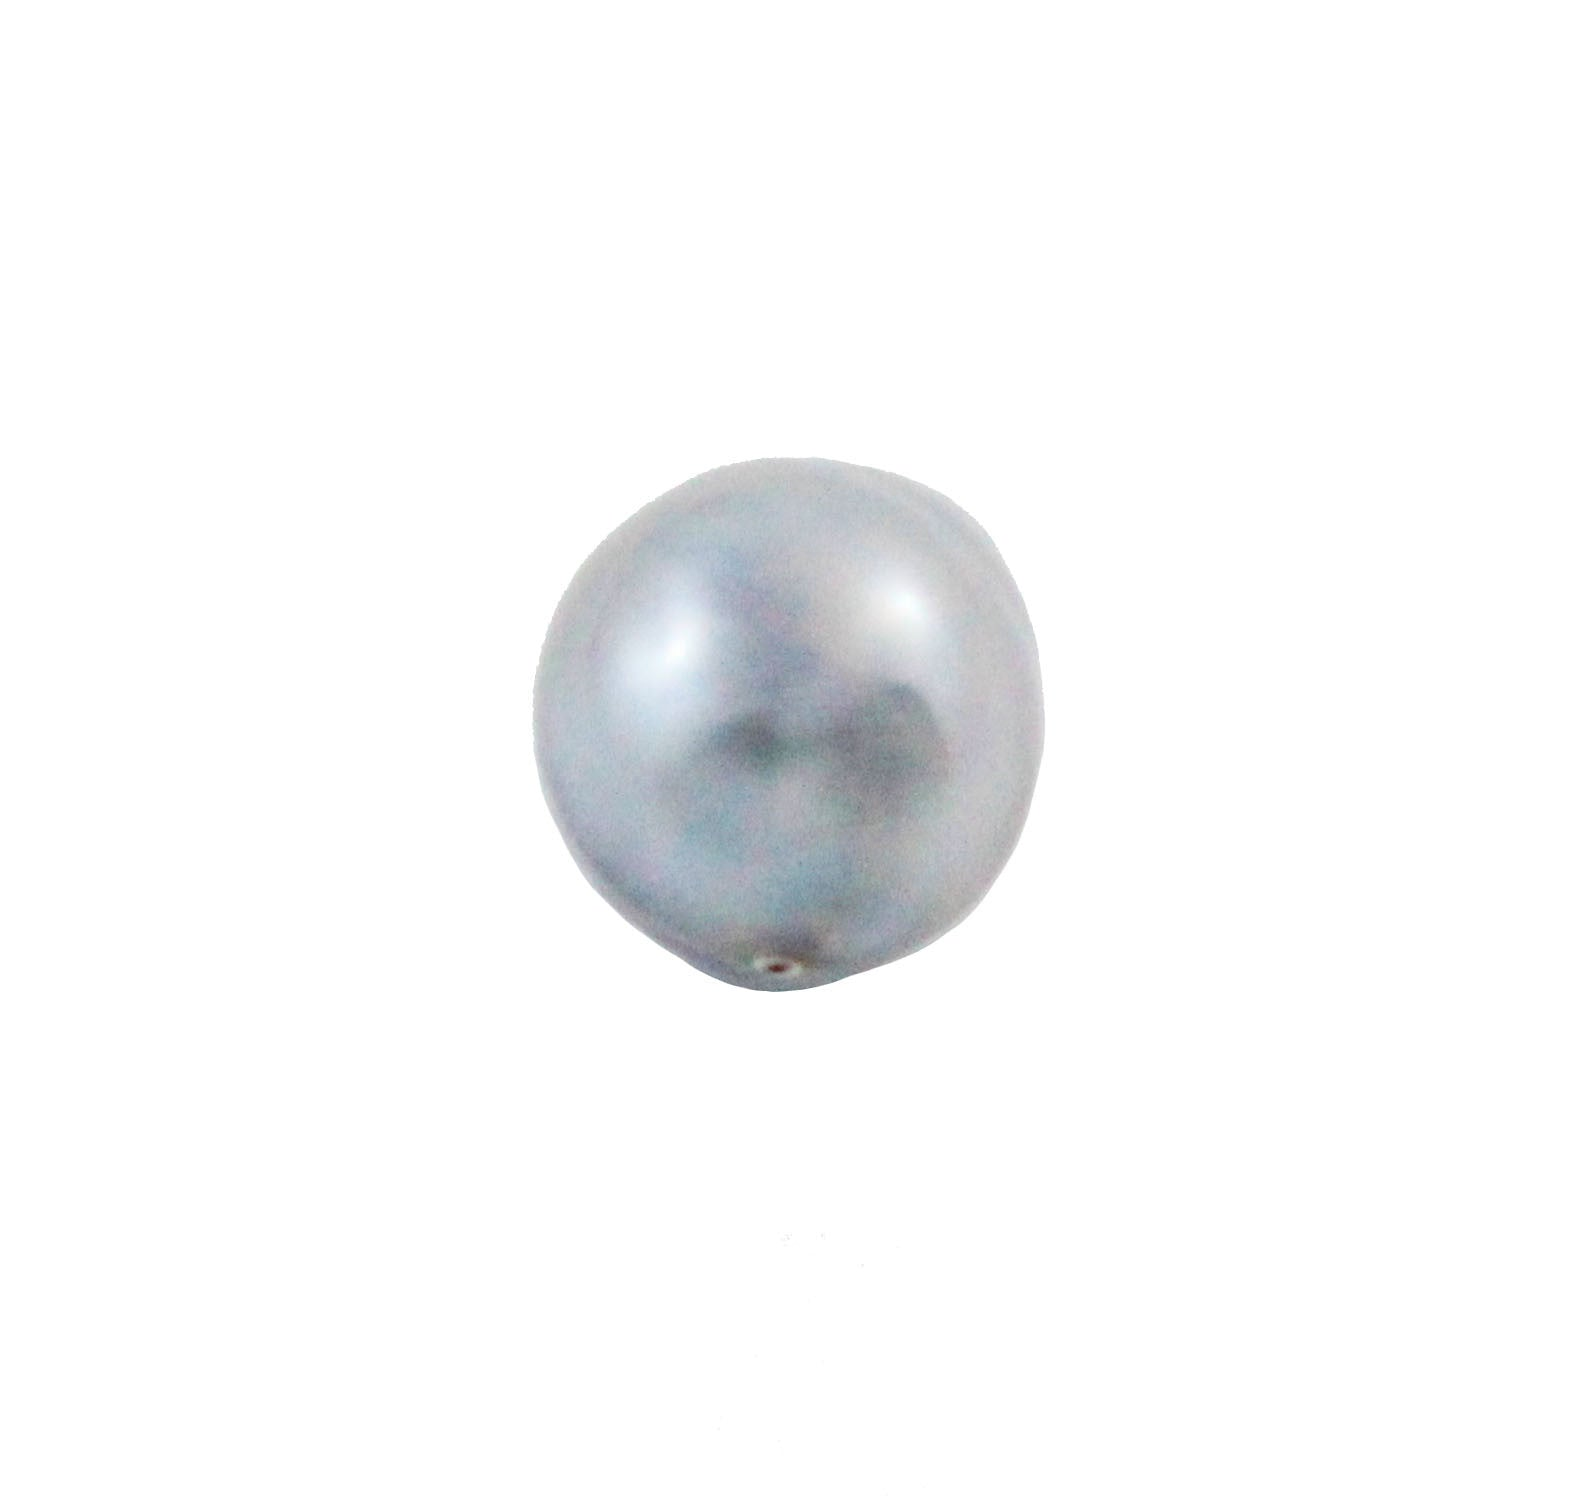 Tahitian pearl undrilled 0.93gr mm 9.88x8.37mm - Purchase only with custom order - Sarah Hughes - 4